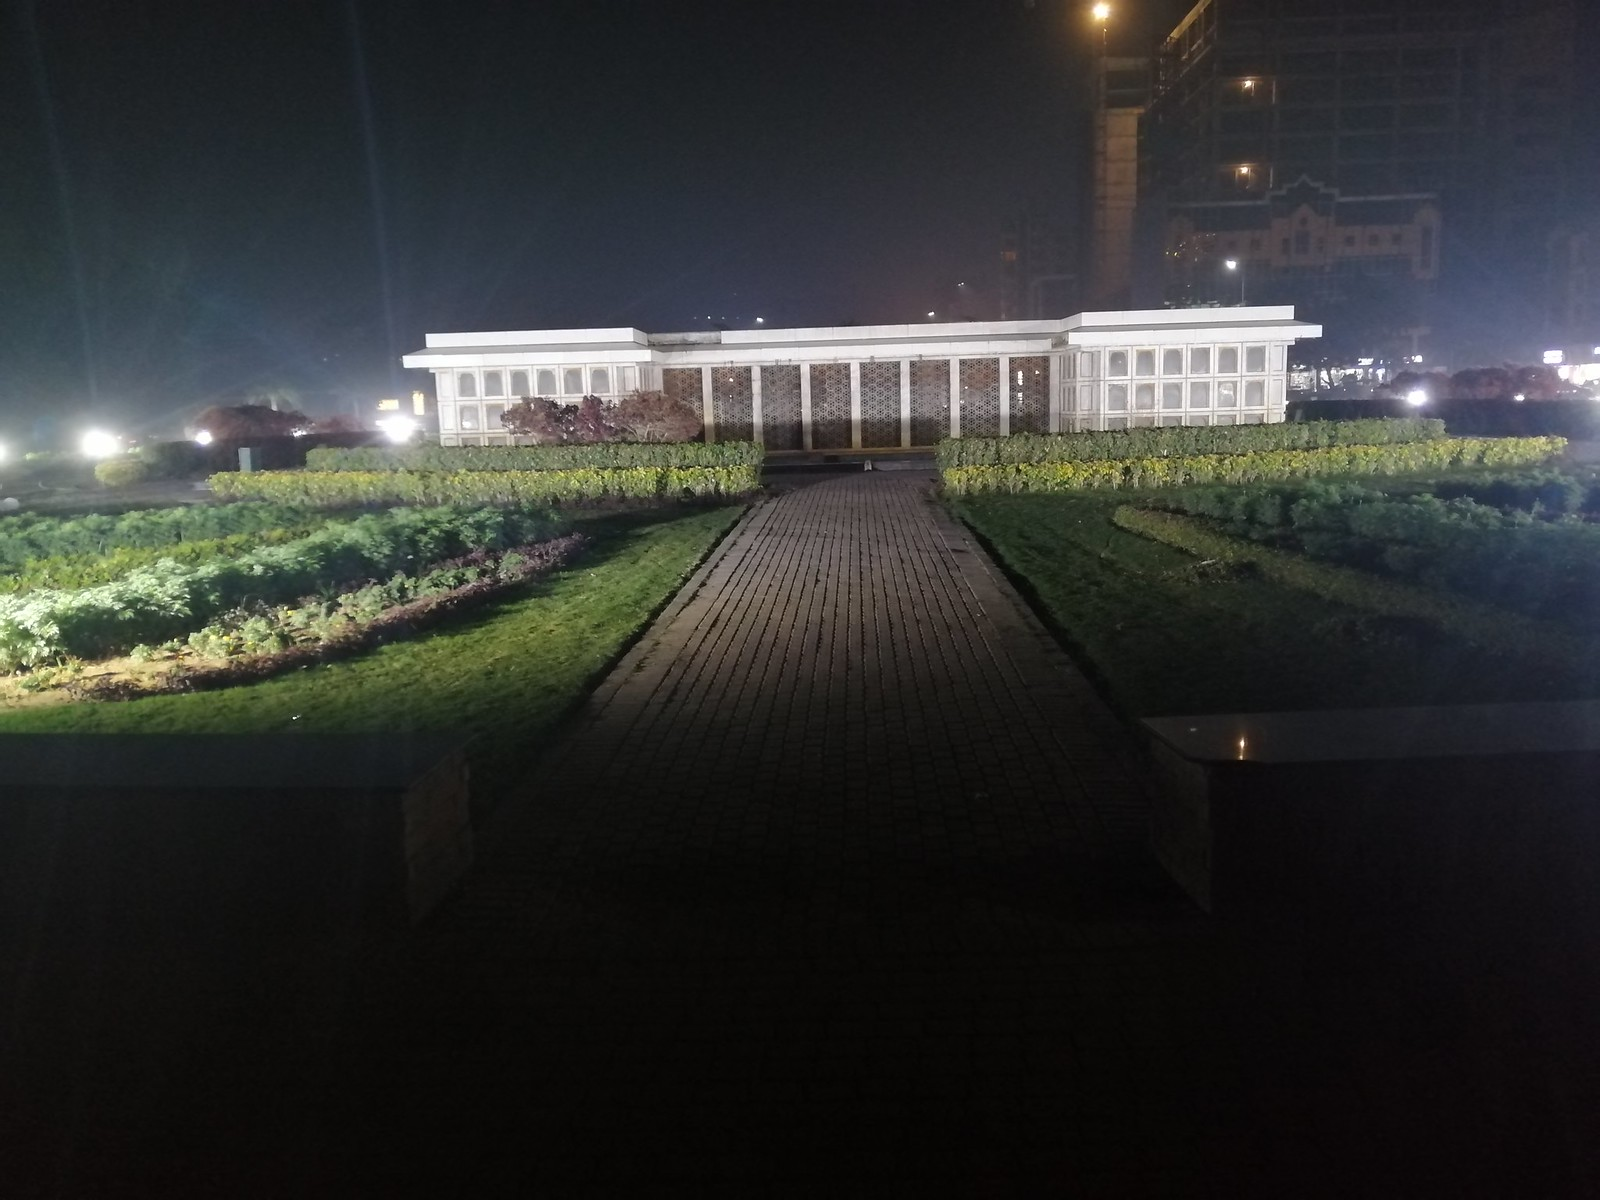 Image at night with Auto Mode on Honor 8X